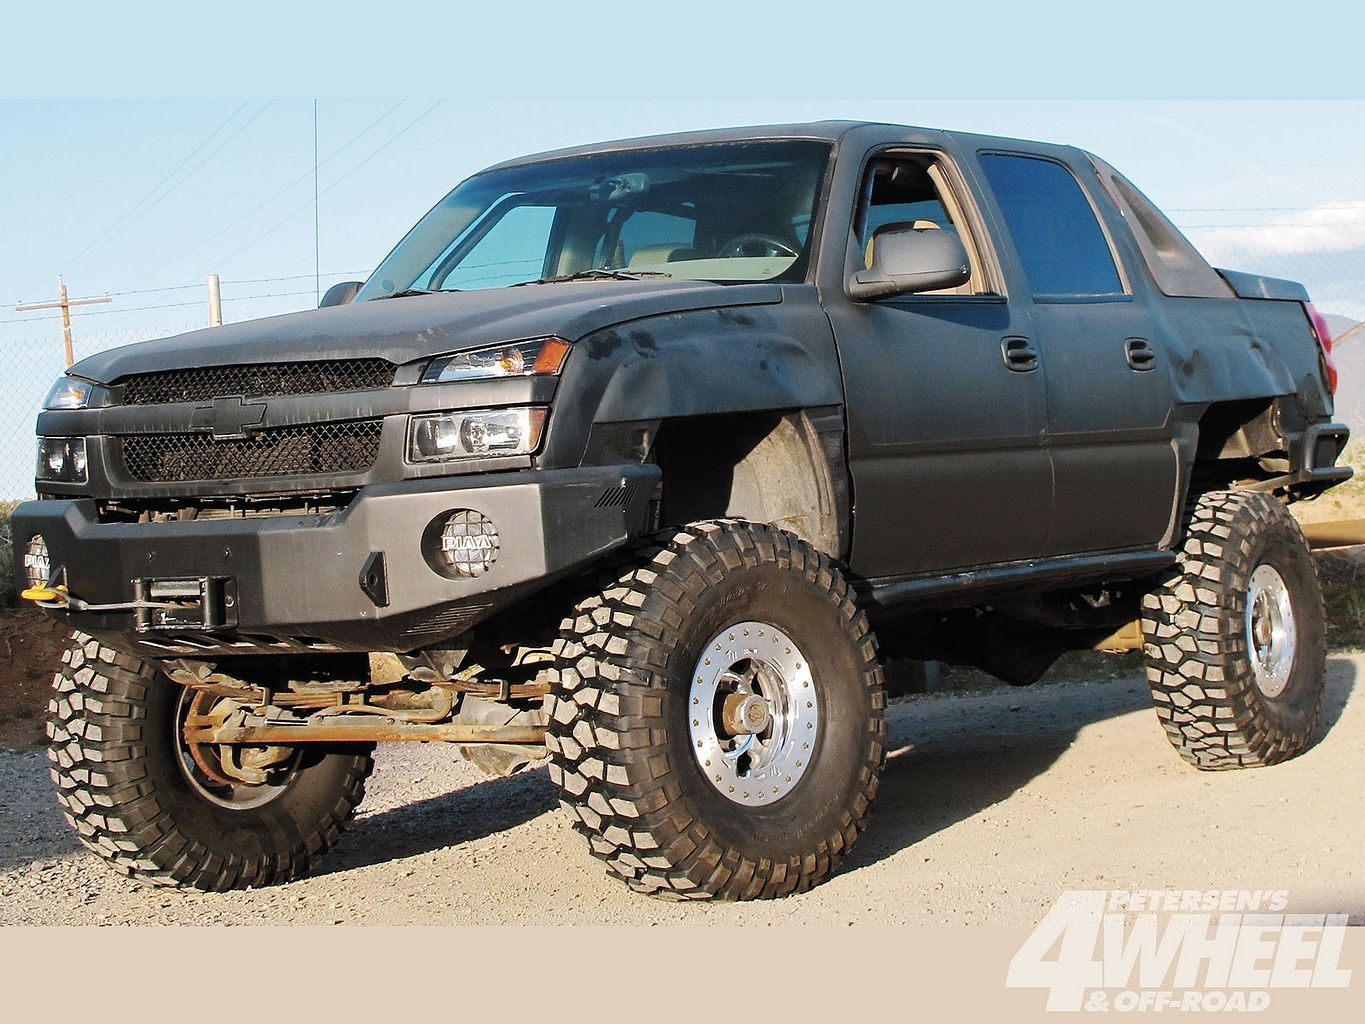 Chevy Avalanche Custom Car Https Www Mobmasker Com Chevy Avalanche Custom Car Chevy Avalanche Chevy Avalanche Truck